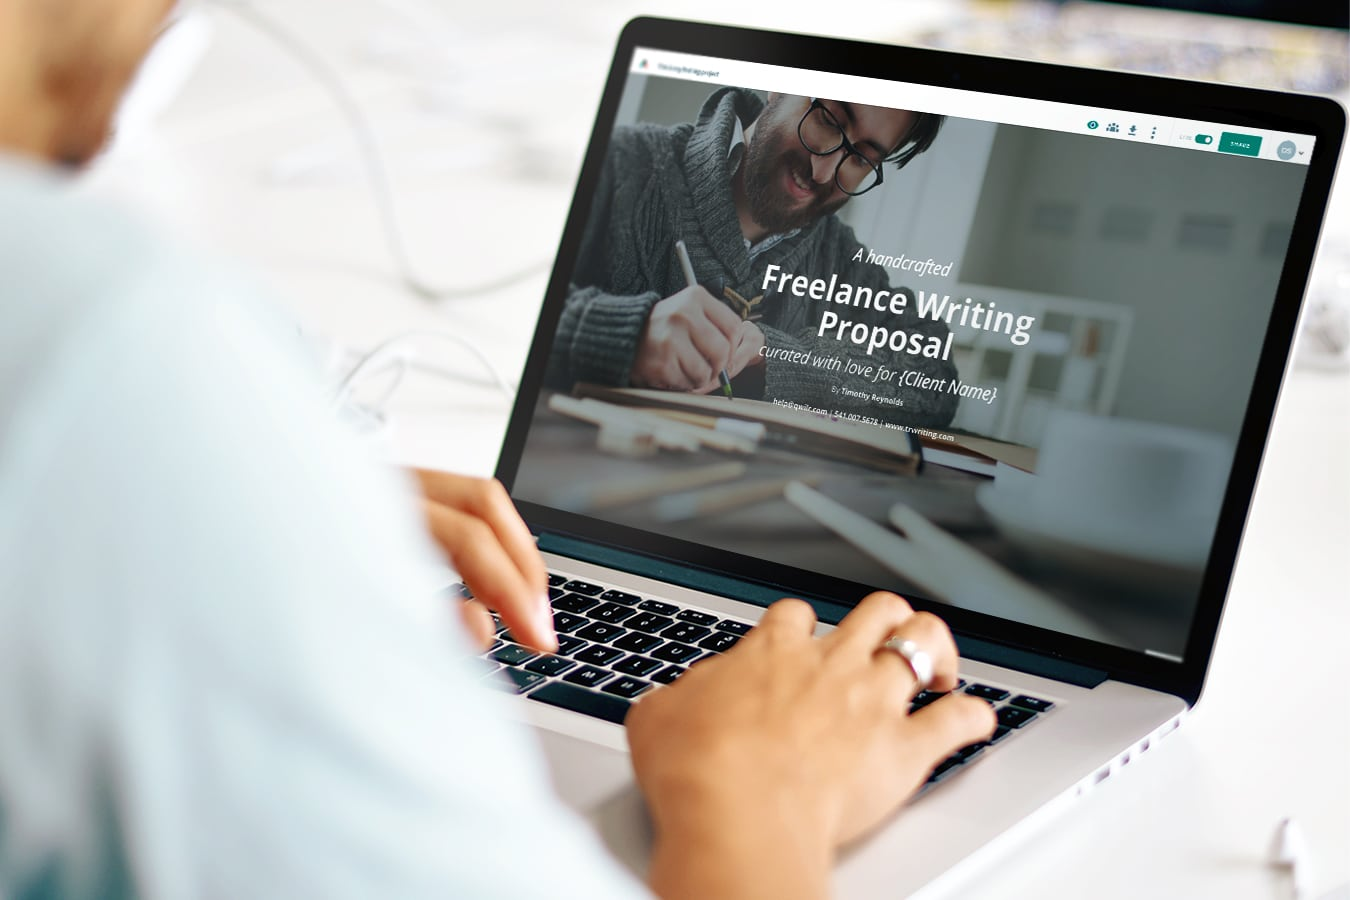 freelance-writing-proposal-template